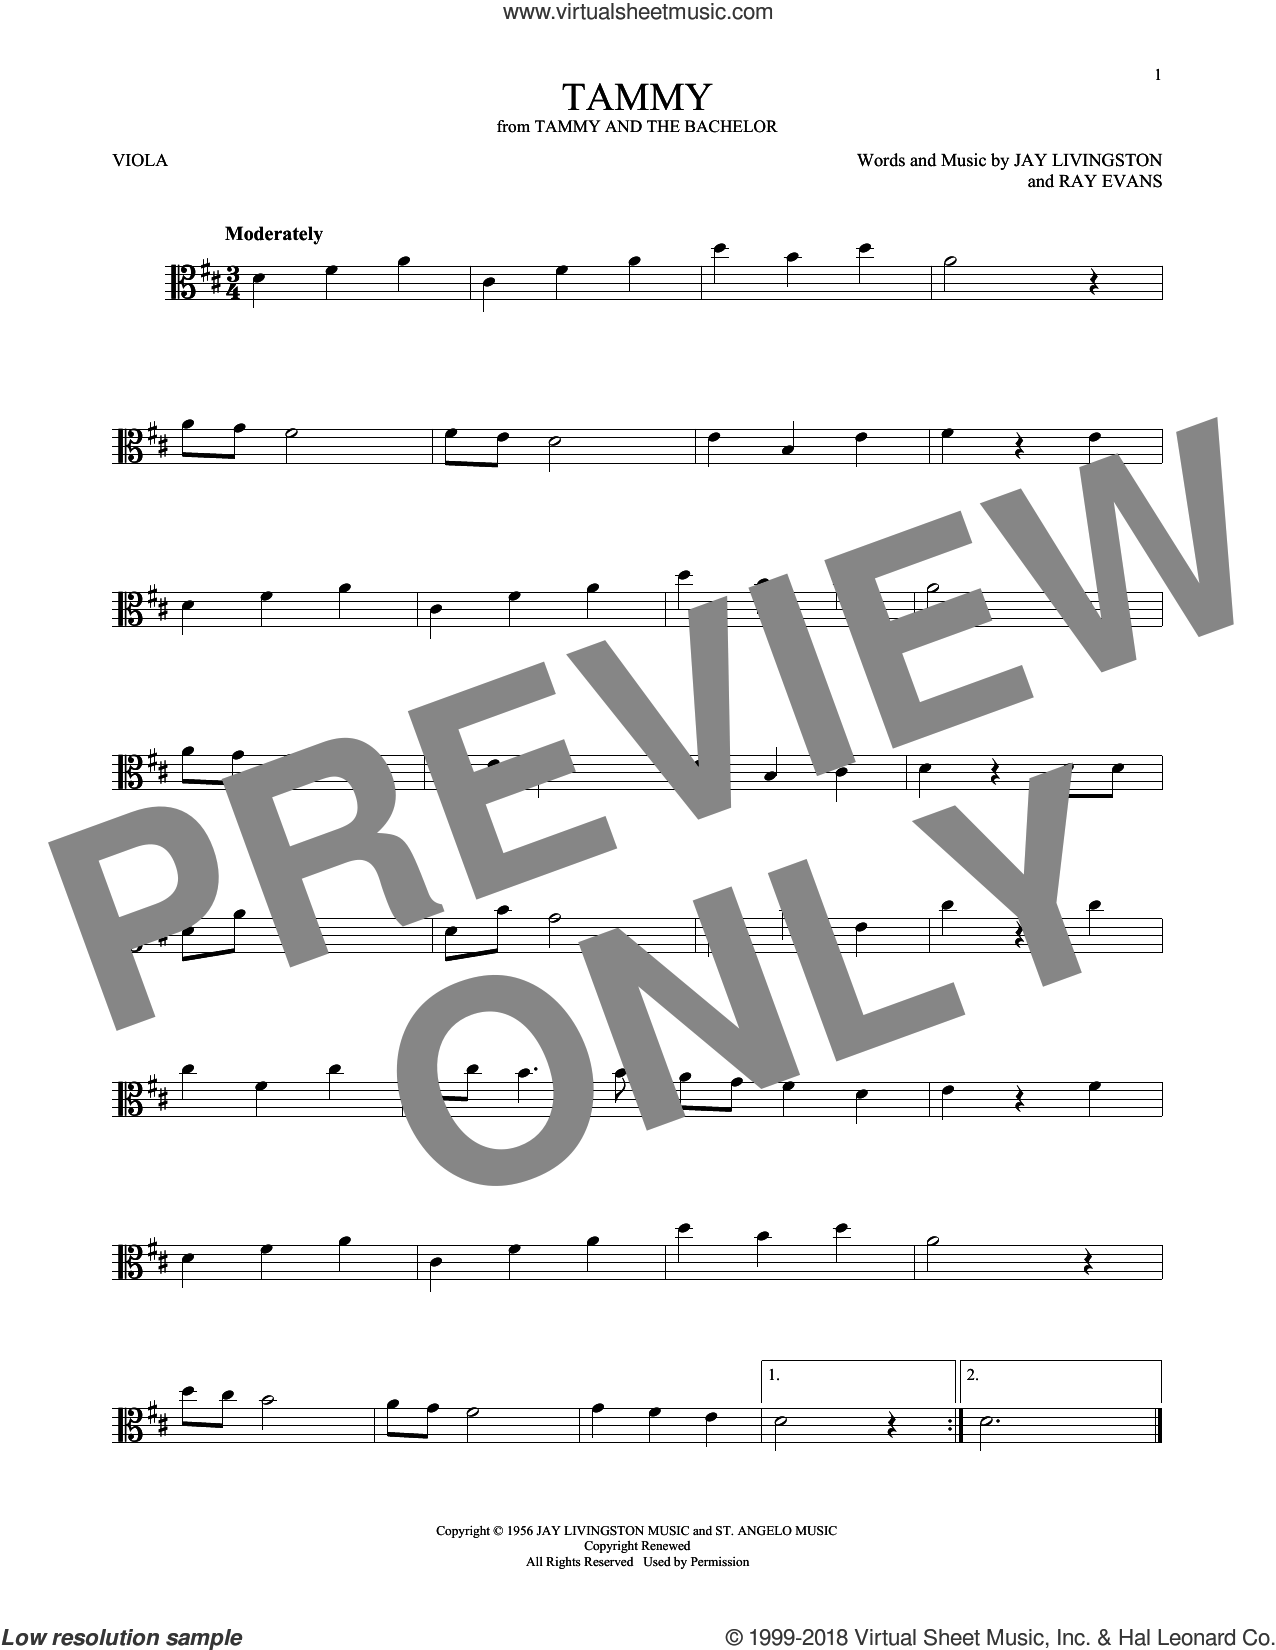 Tammy sheet music for viola solo by Debbie Reynolds, The Ames Brothers, Jay Livingston and Ray Evans, intermediate skill level